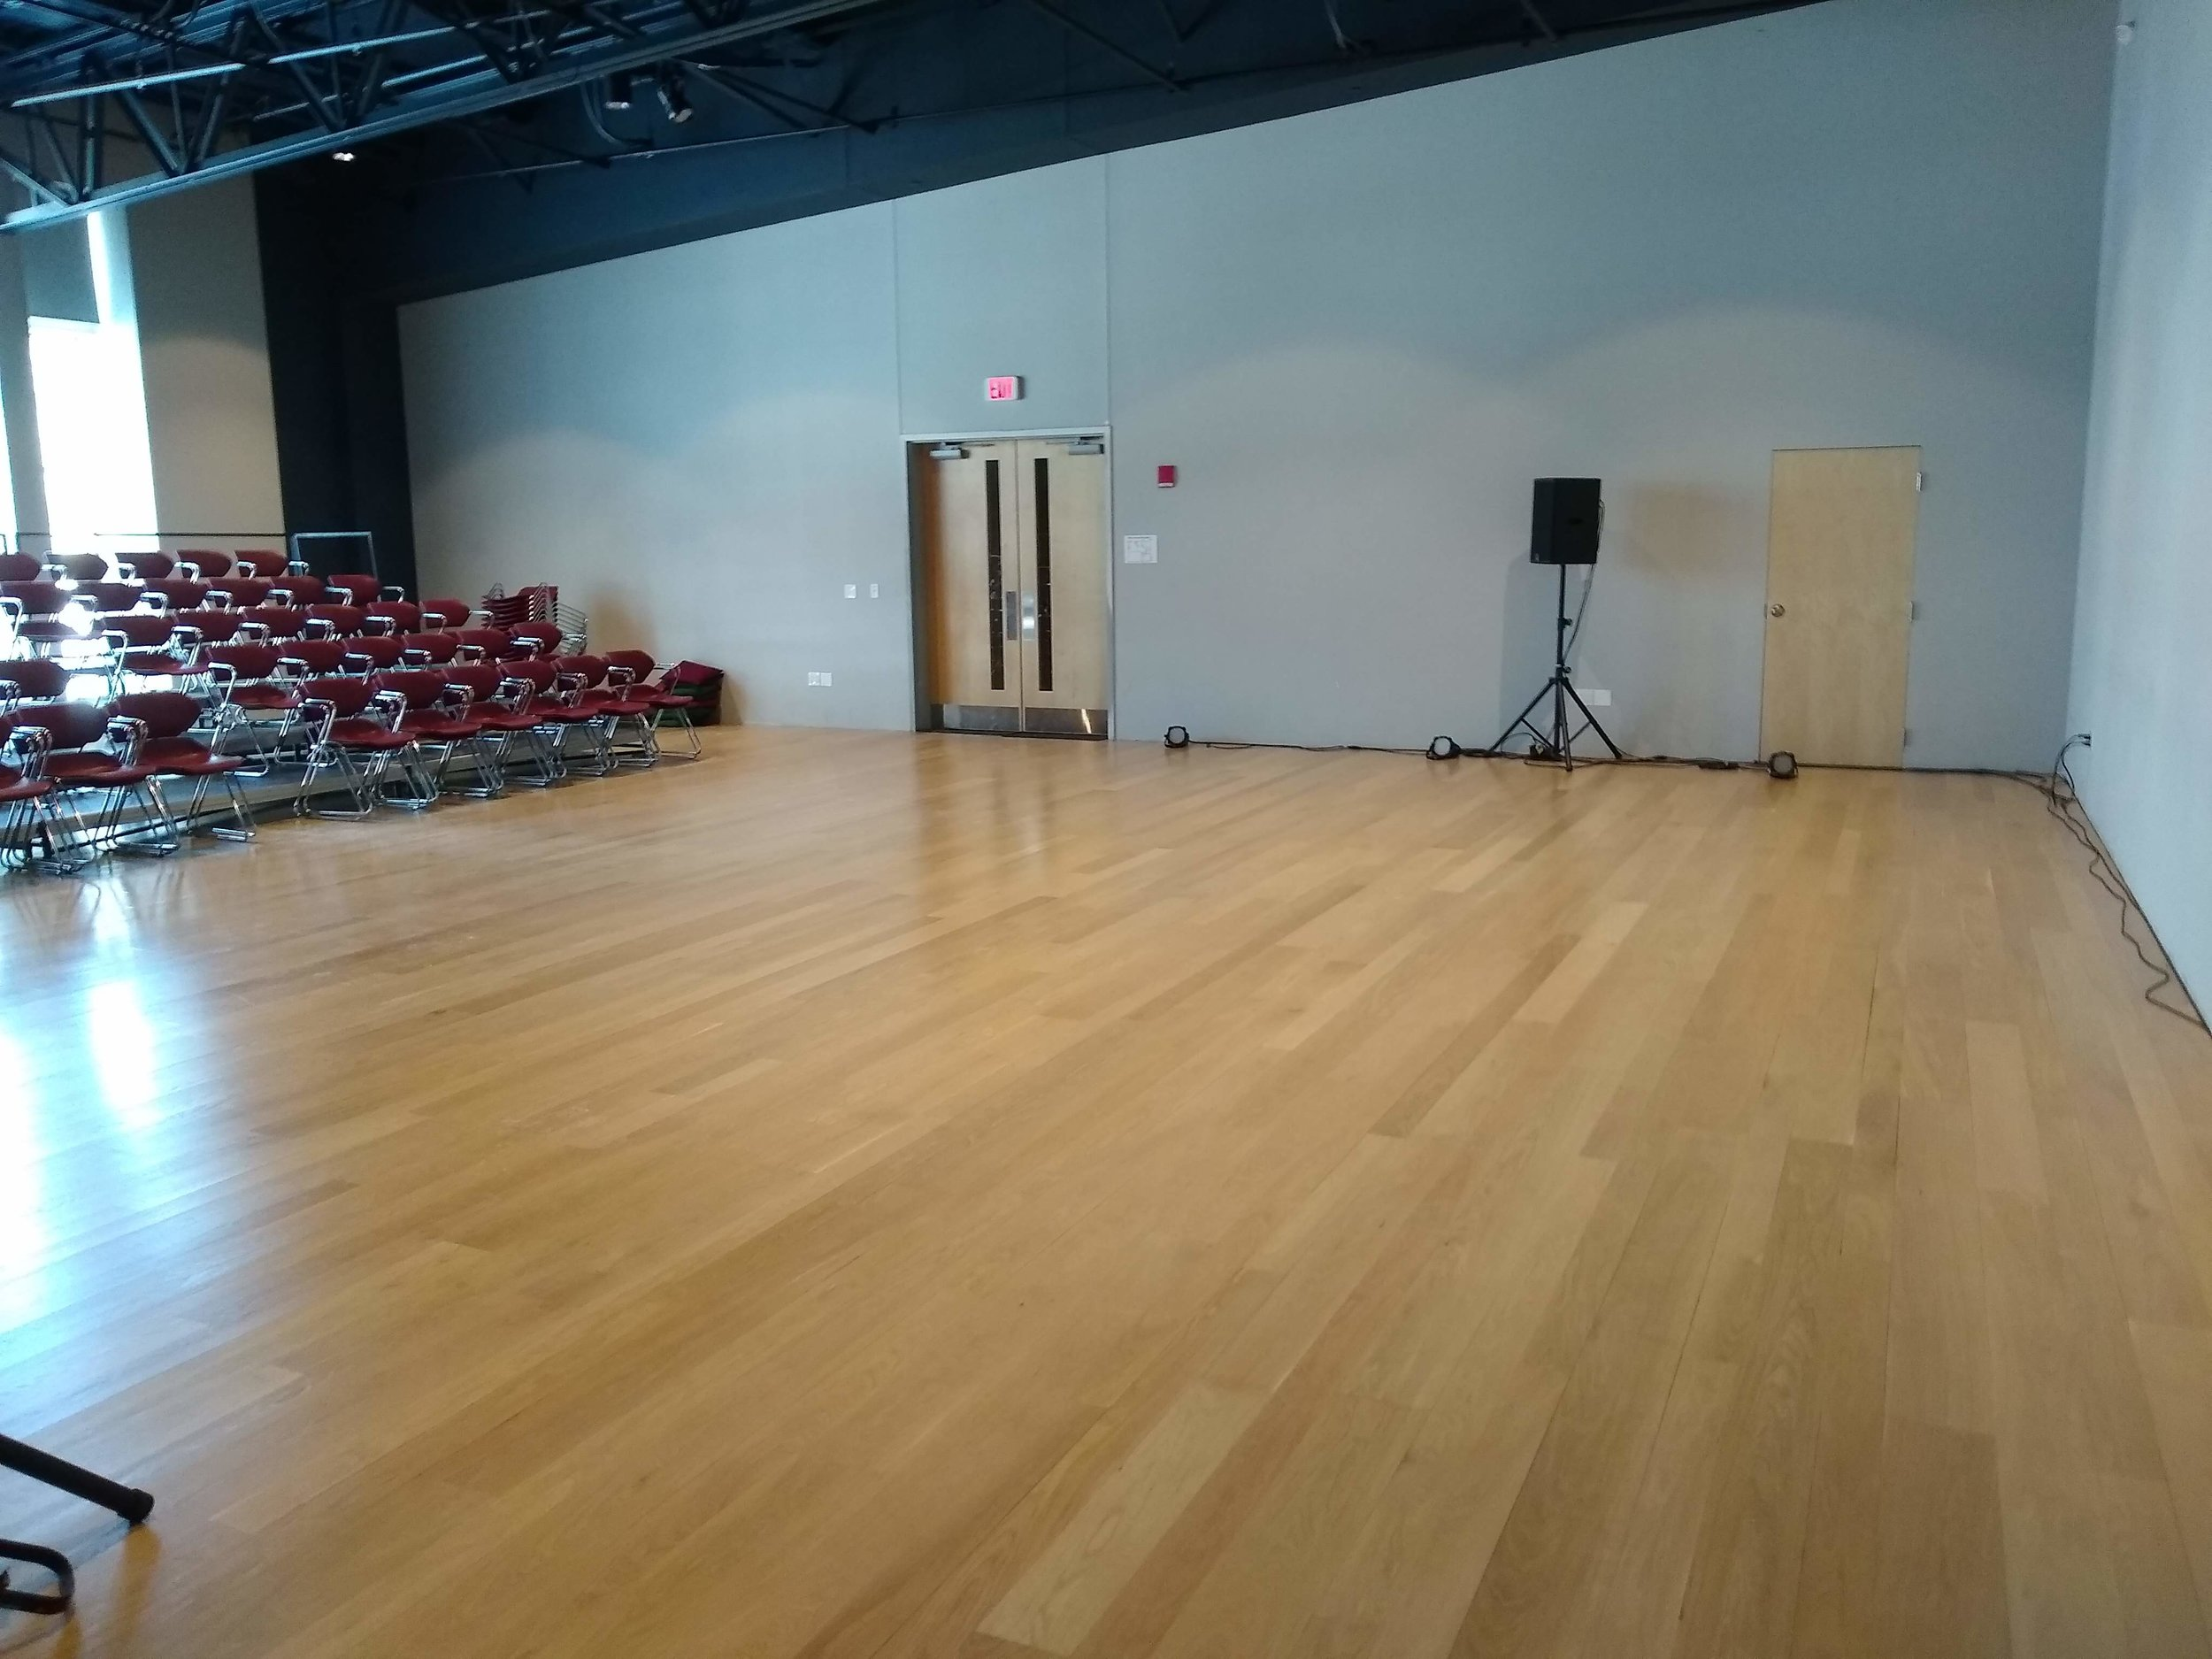 This photo shows the Flex space with risers and chairs in front of the windows. Riser can also face the wall opposite the doors, or be removed entirely, depending upon the needs of the event or performance.